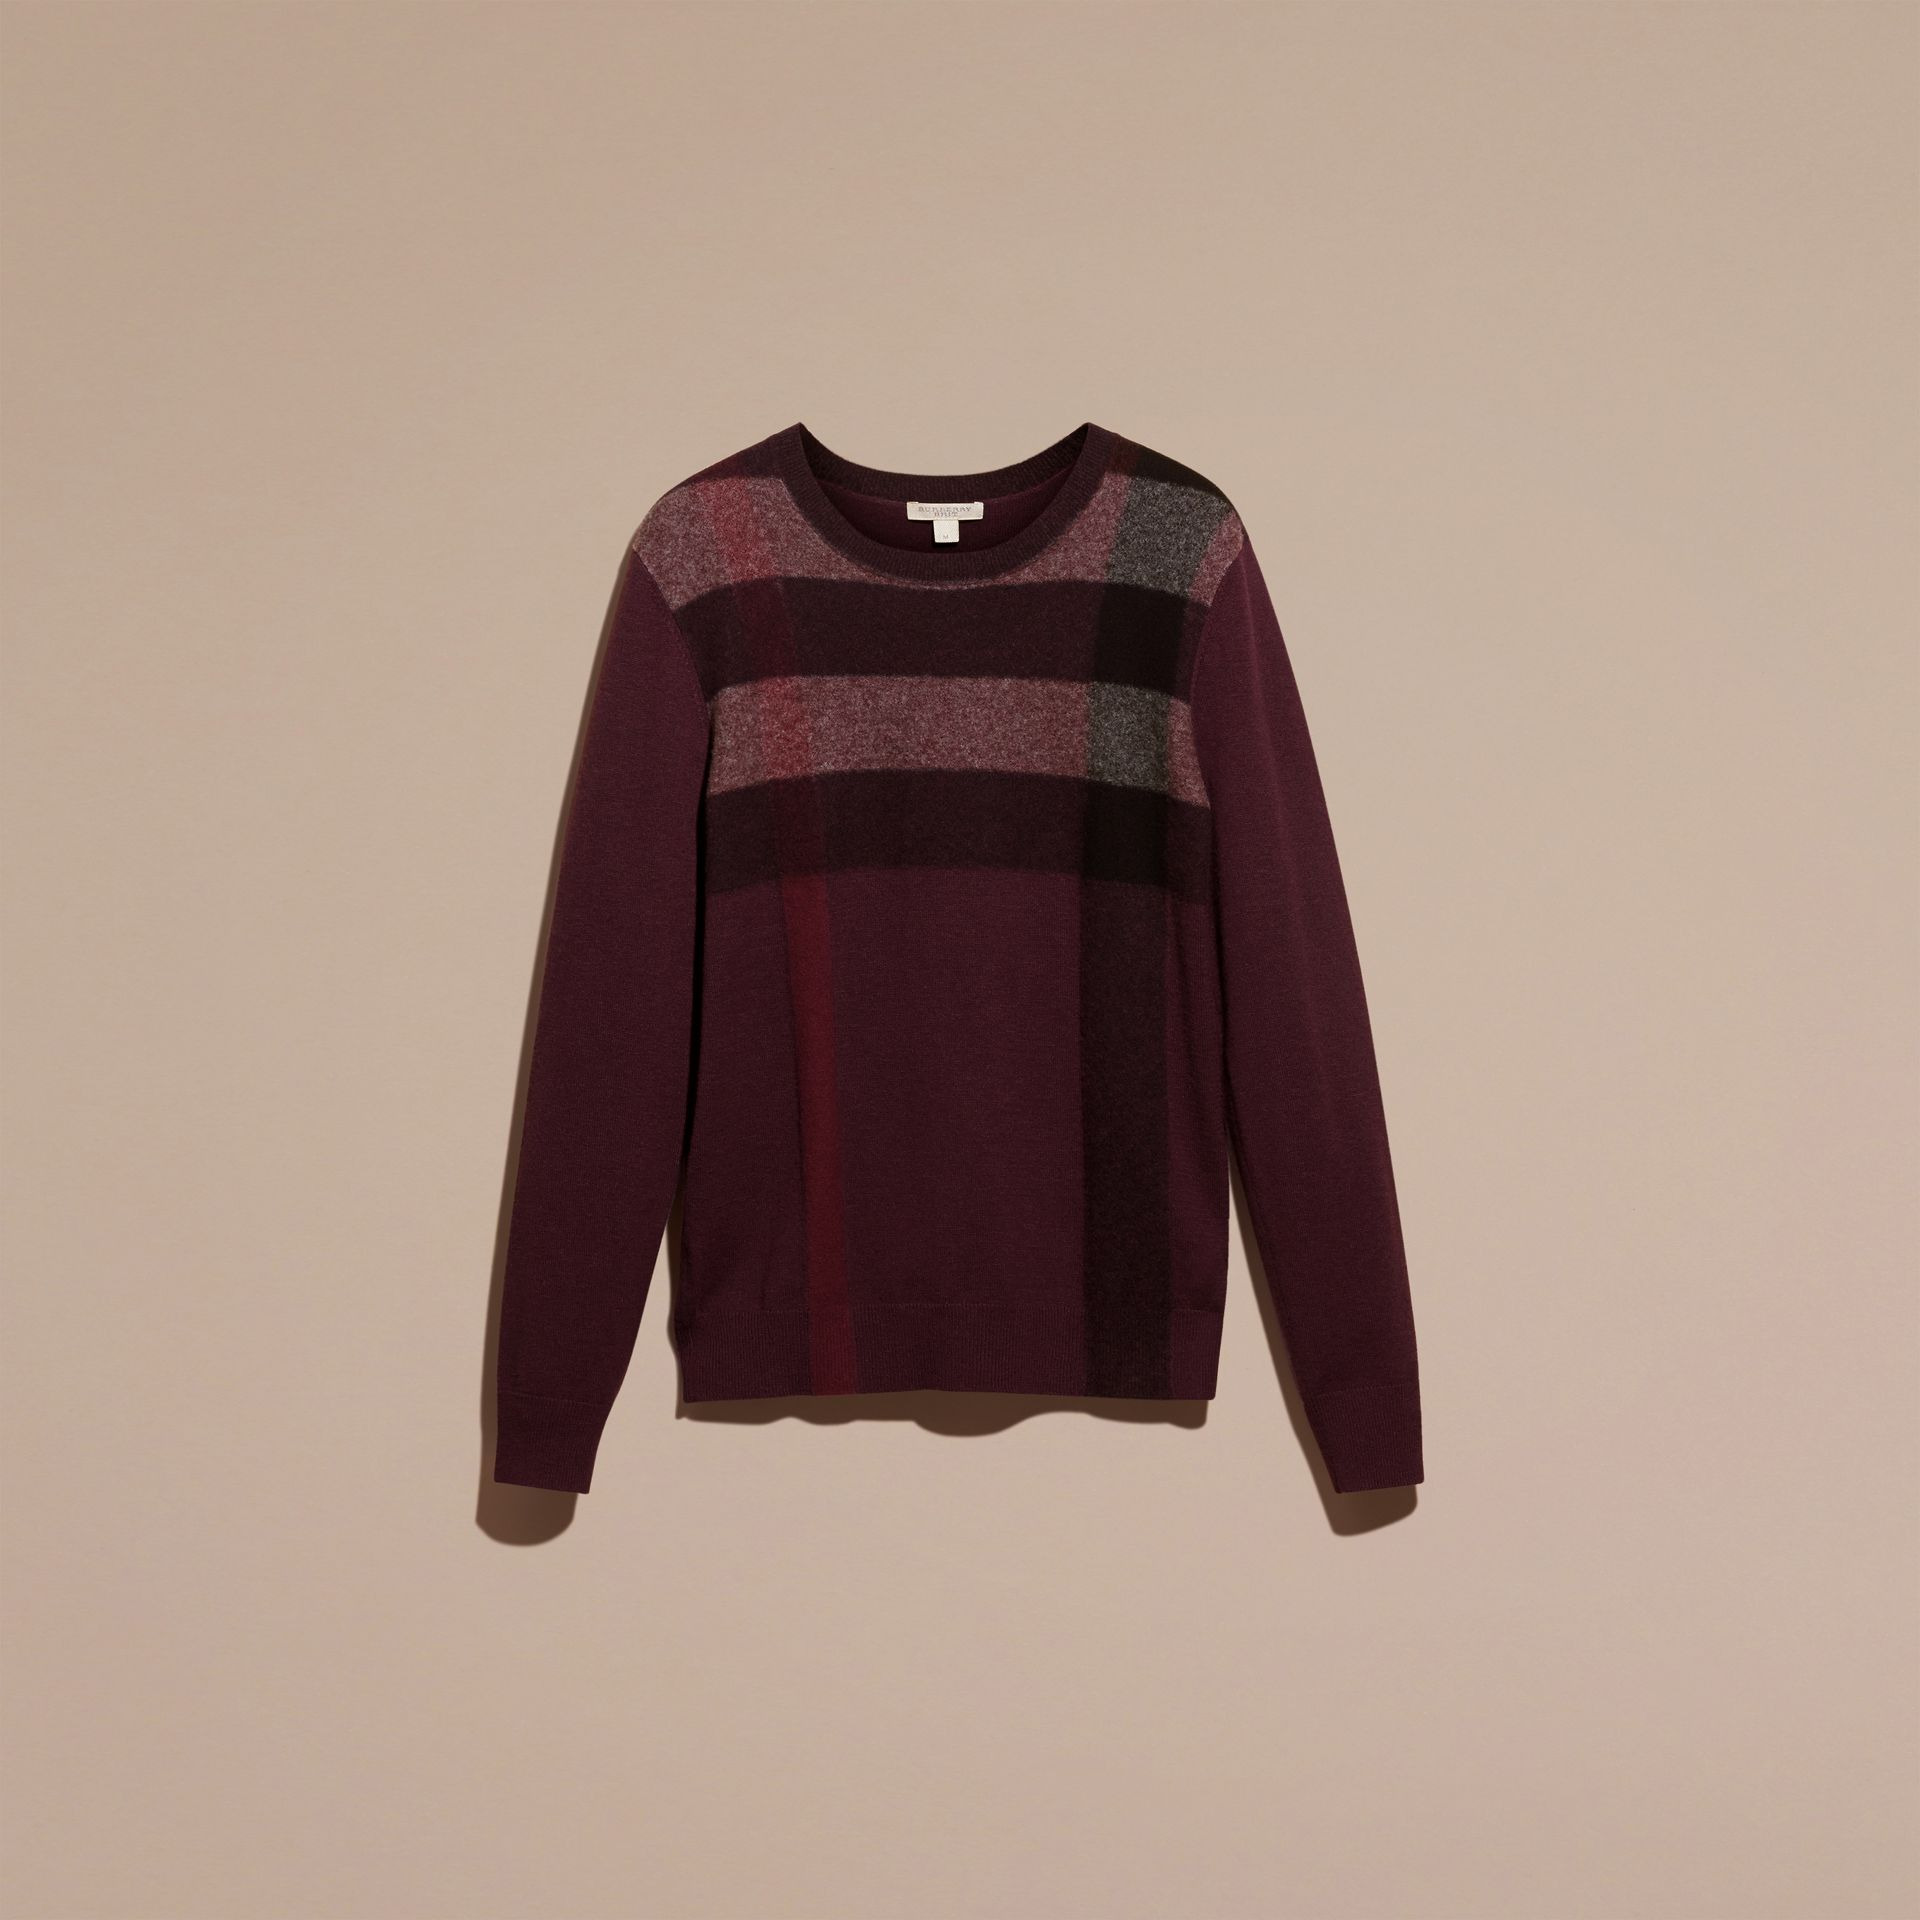 Graphic Check Cashmere Cotton Sweater - gallery image 4